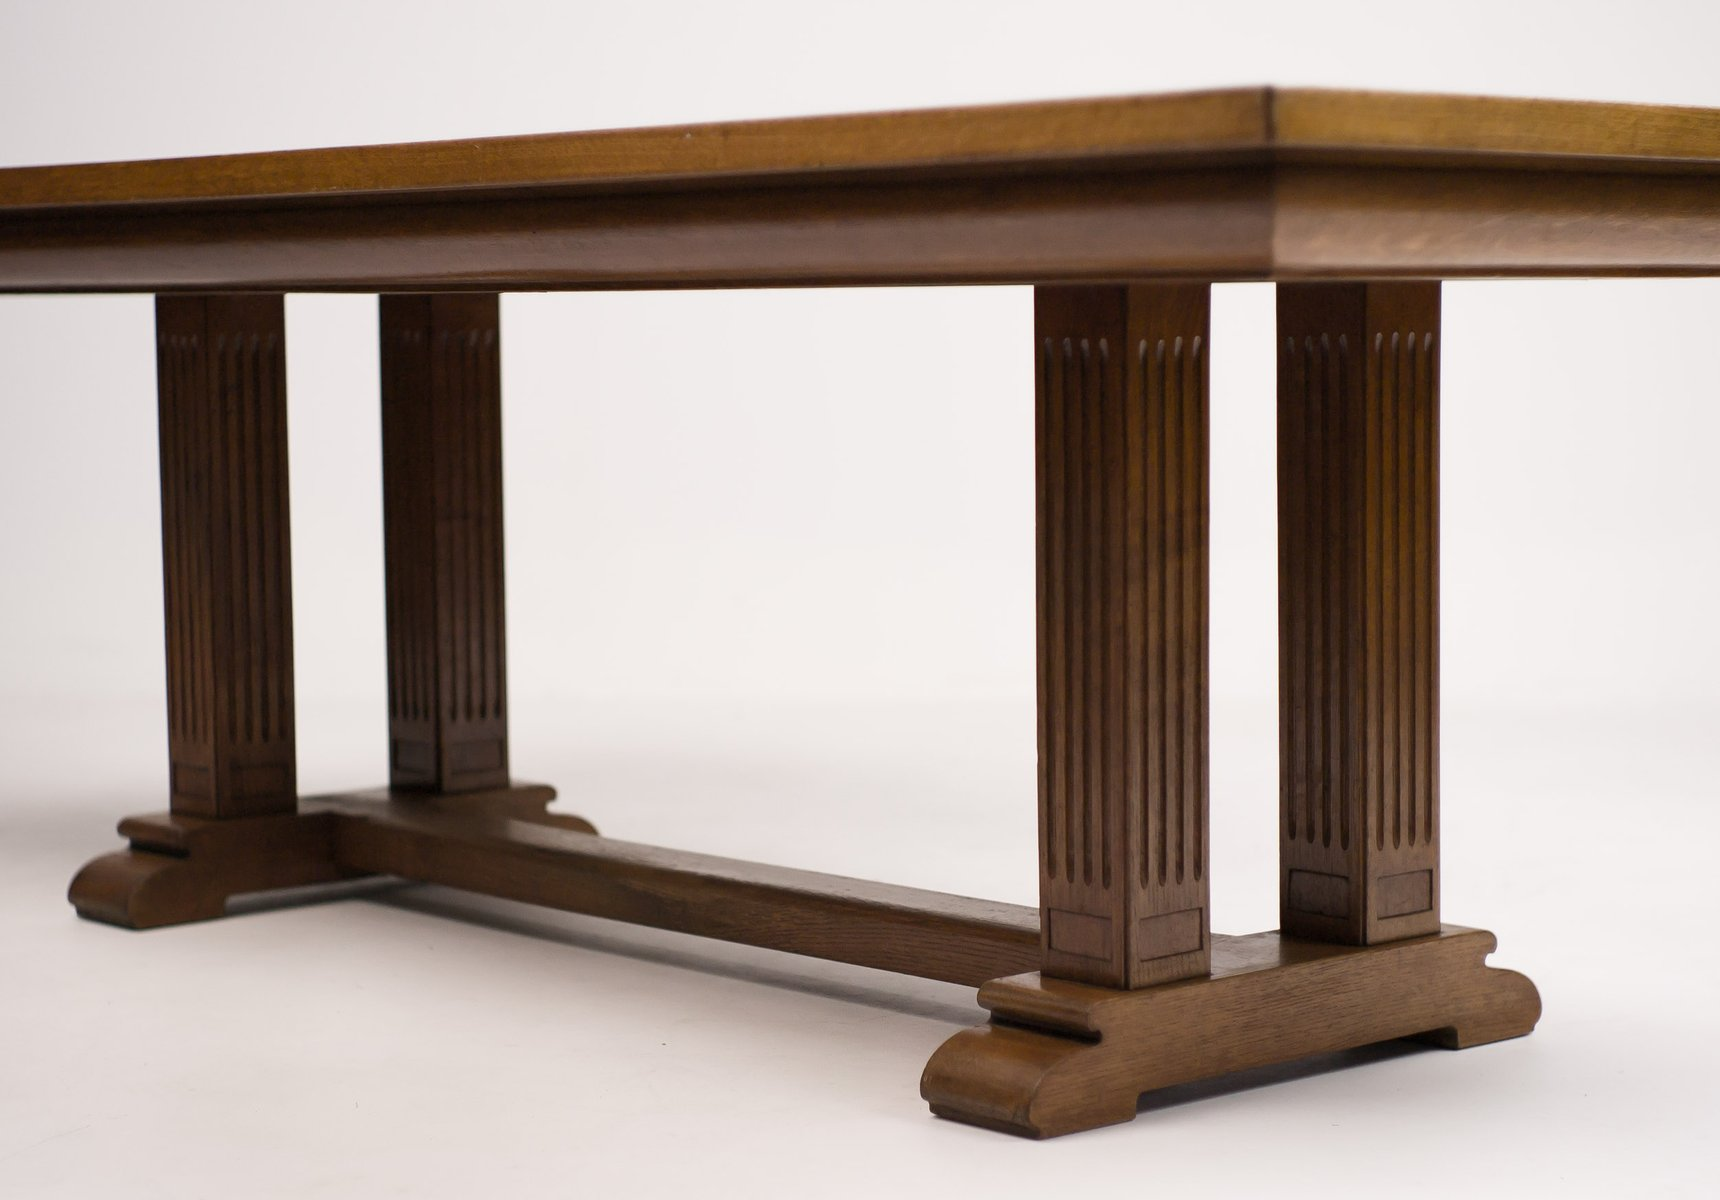 Architectural oak dining table 1920s for sale at pamono for 1 oak nyc table prices